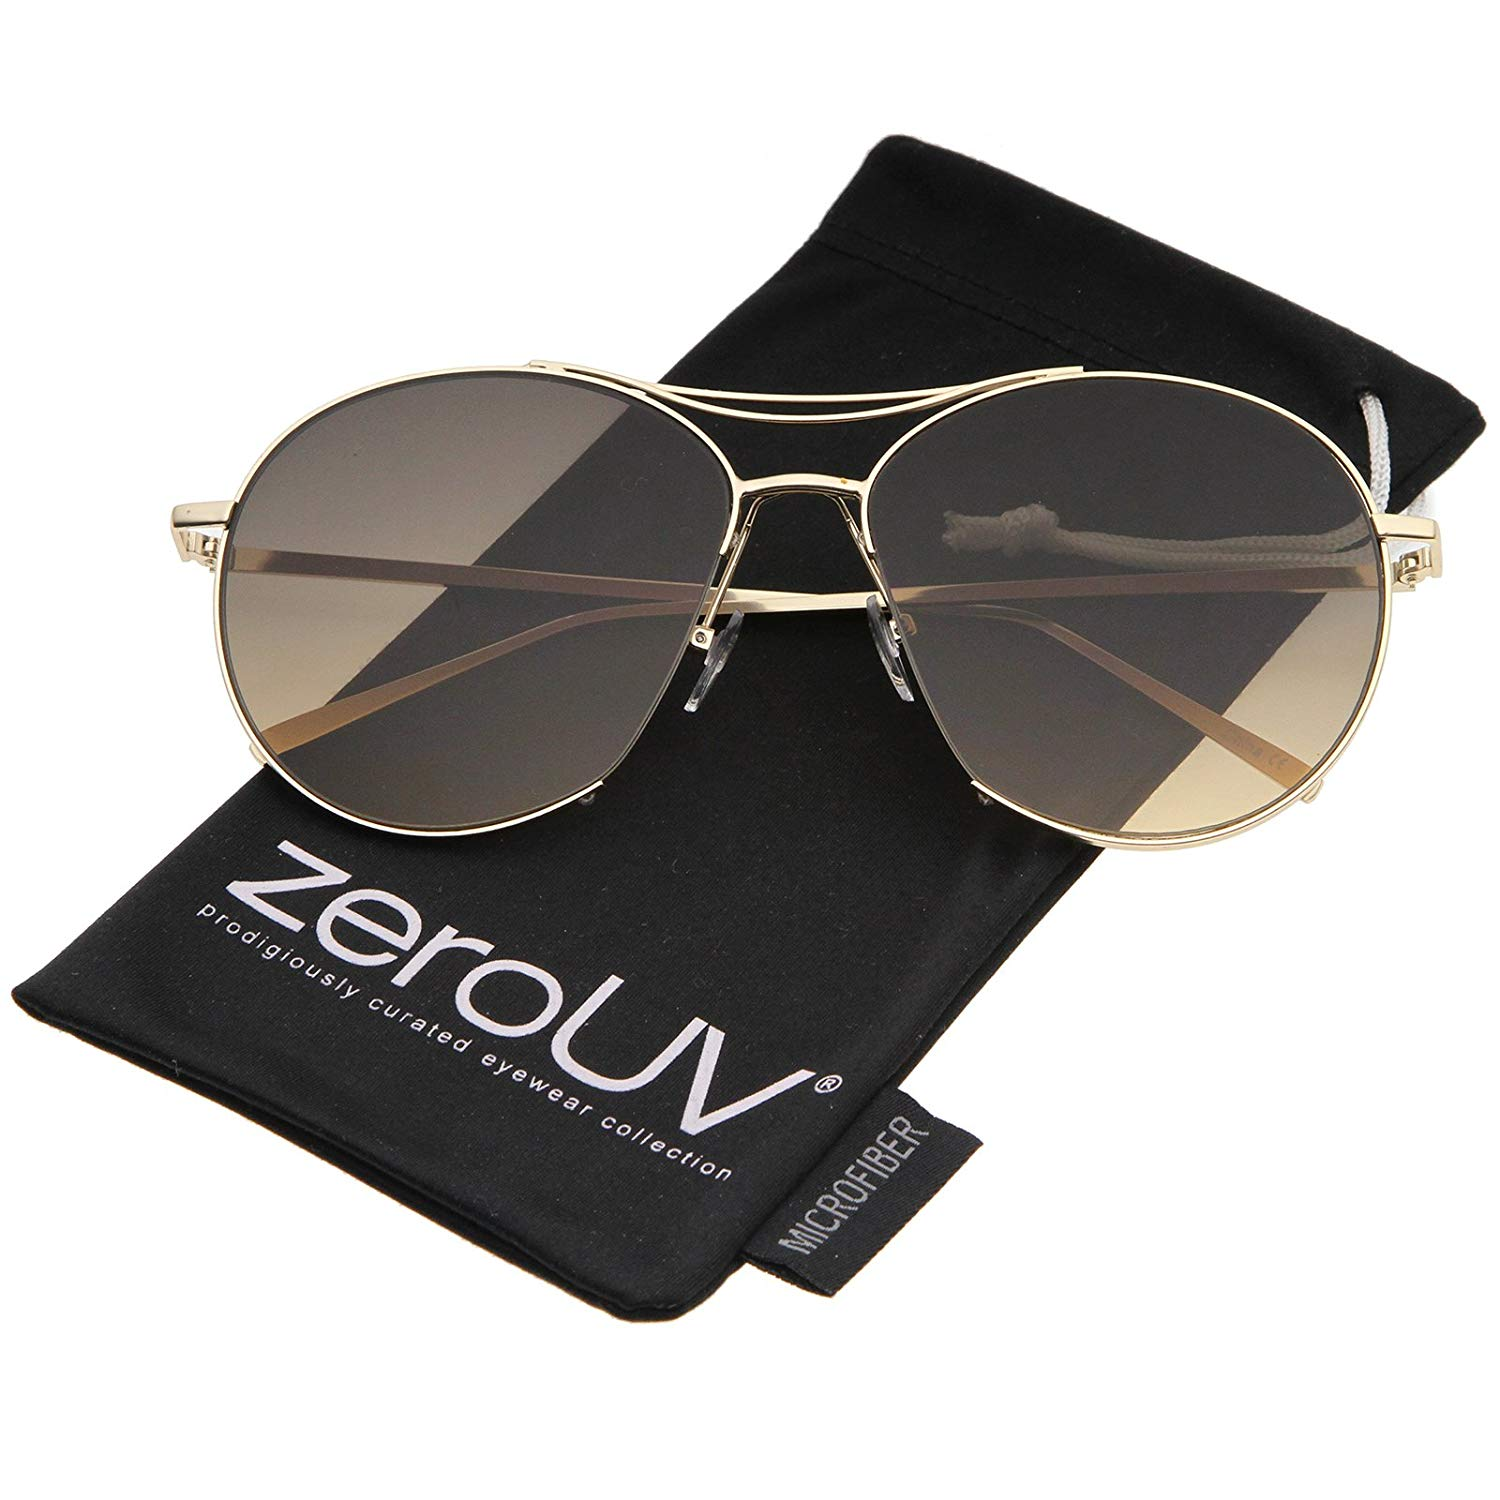 b2b08aaae Get Quotations · zeroUV - Oversized Metal Frame Brow Bar Semi-Rimless  Gradient Flat Lens Aviator Sunglasses 60mm